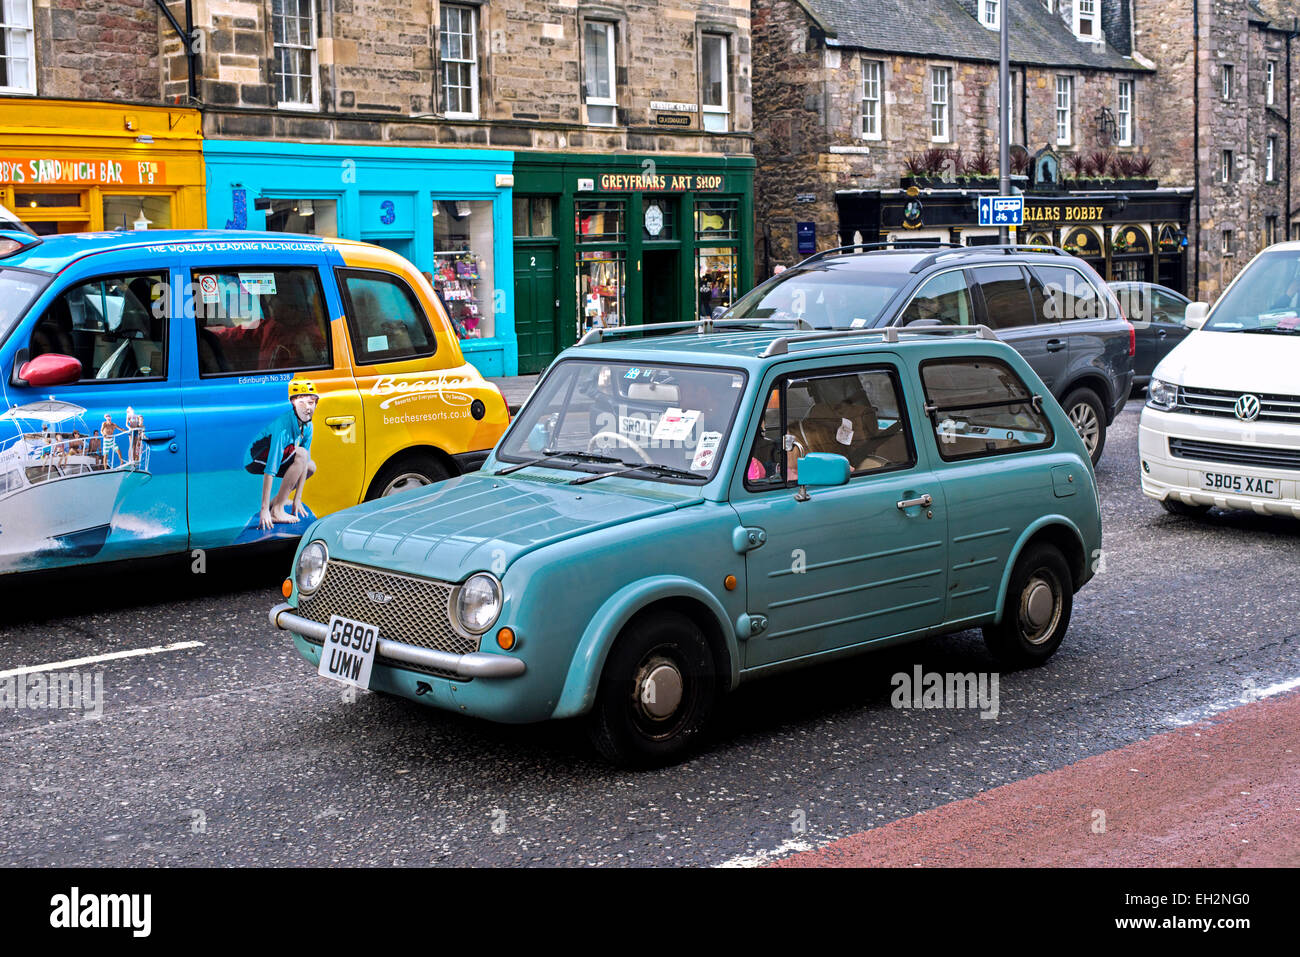 A Nissan Pao, a retro-styled automobile from Nissan Motors, sitting in traffic on George IV Bridge in Edinburgh, - Stock Image